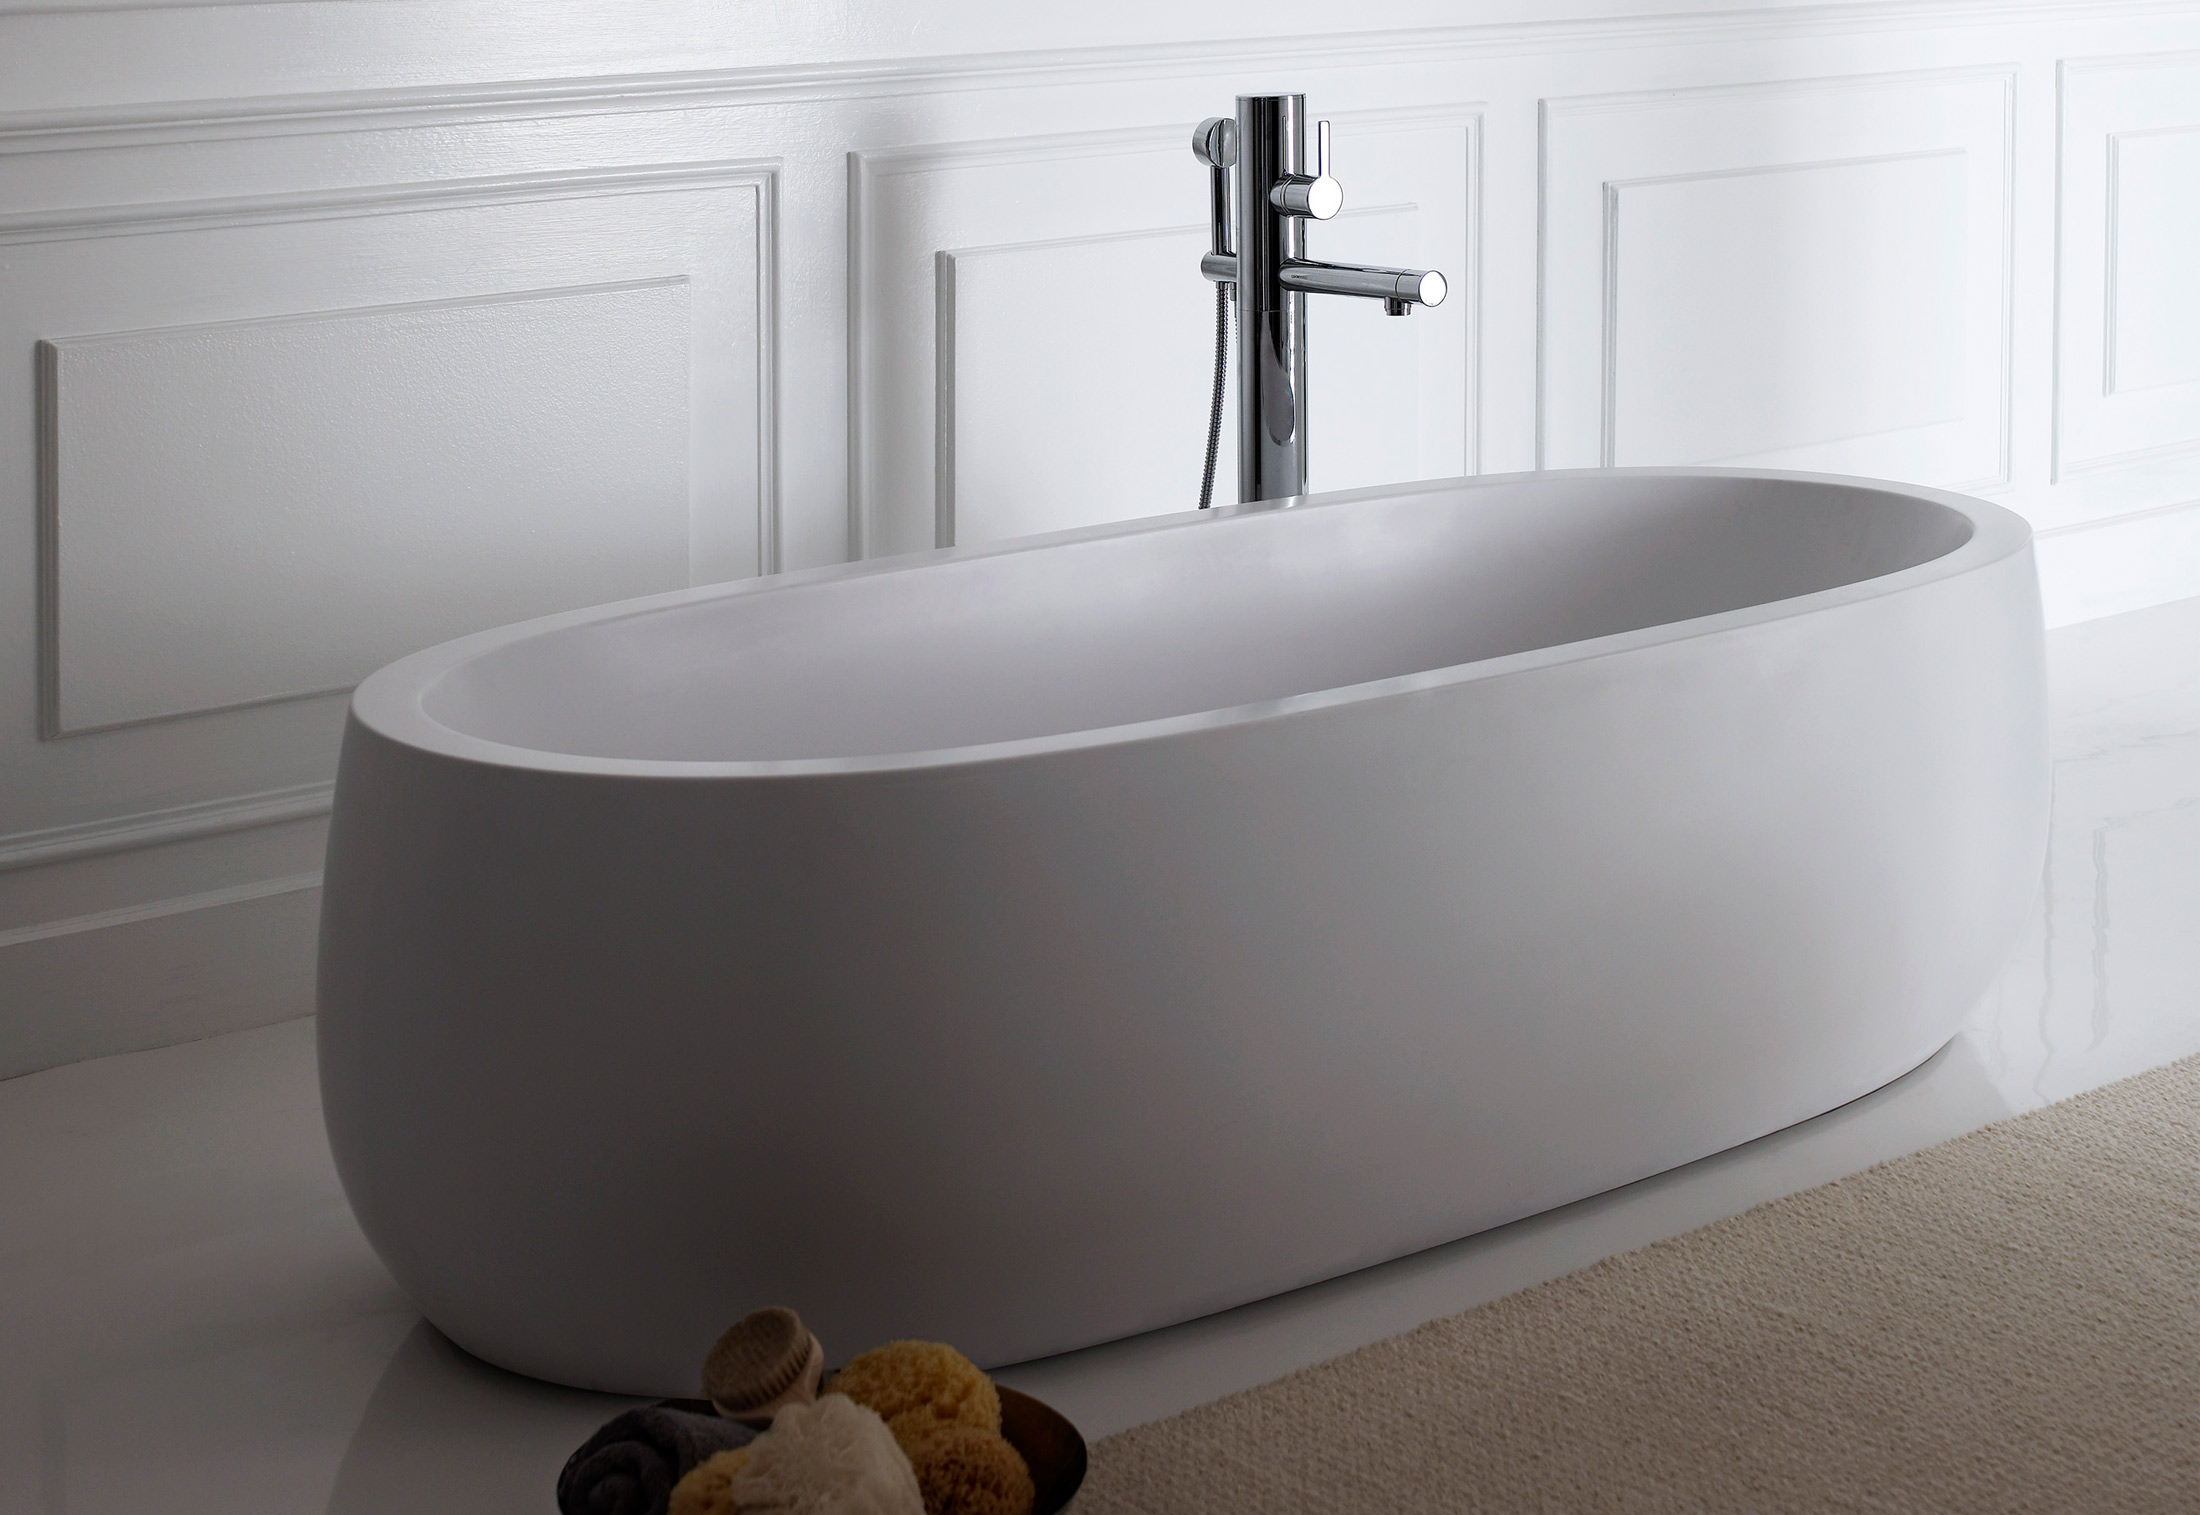 Il Bagno Alessi One freestanding bathtub by Laufen | STYLEPARK